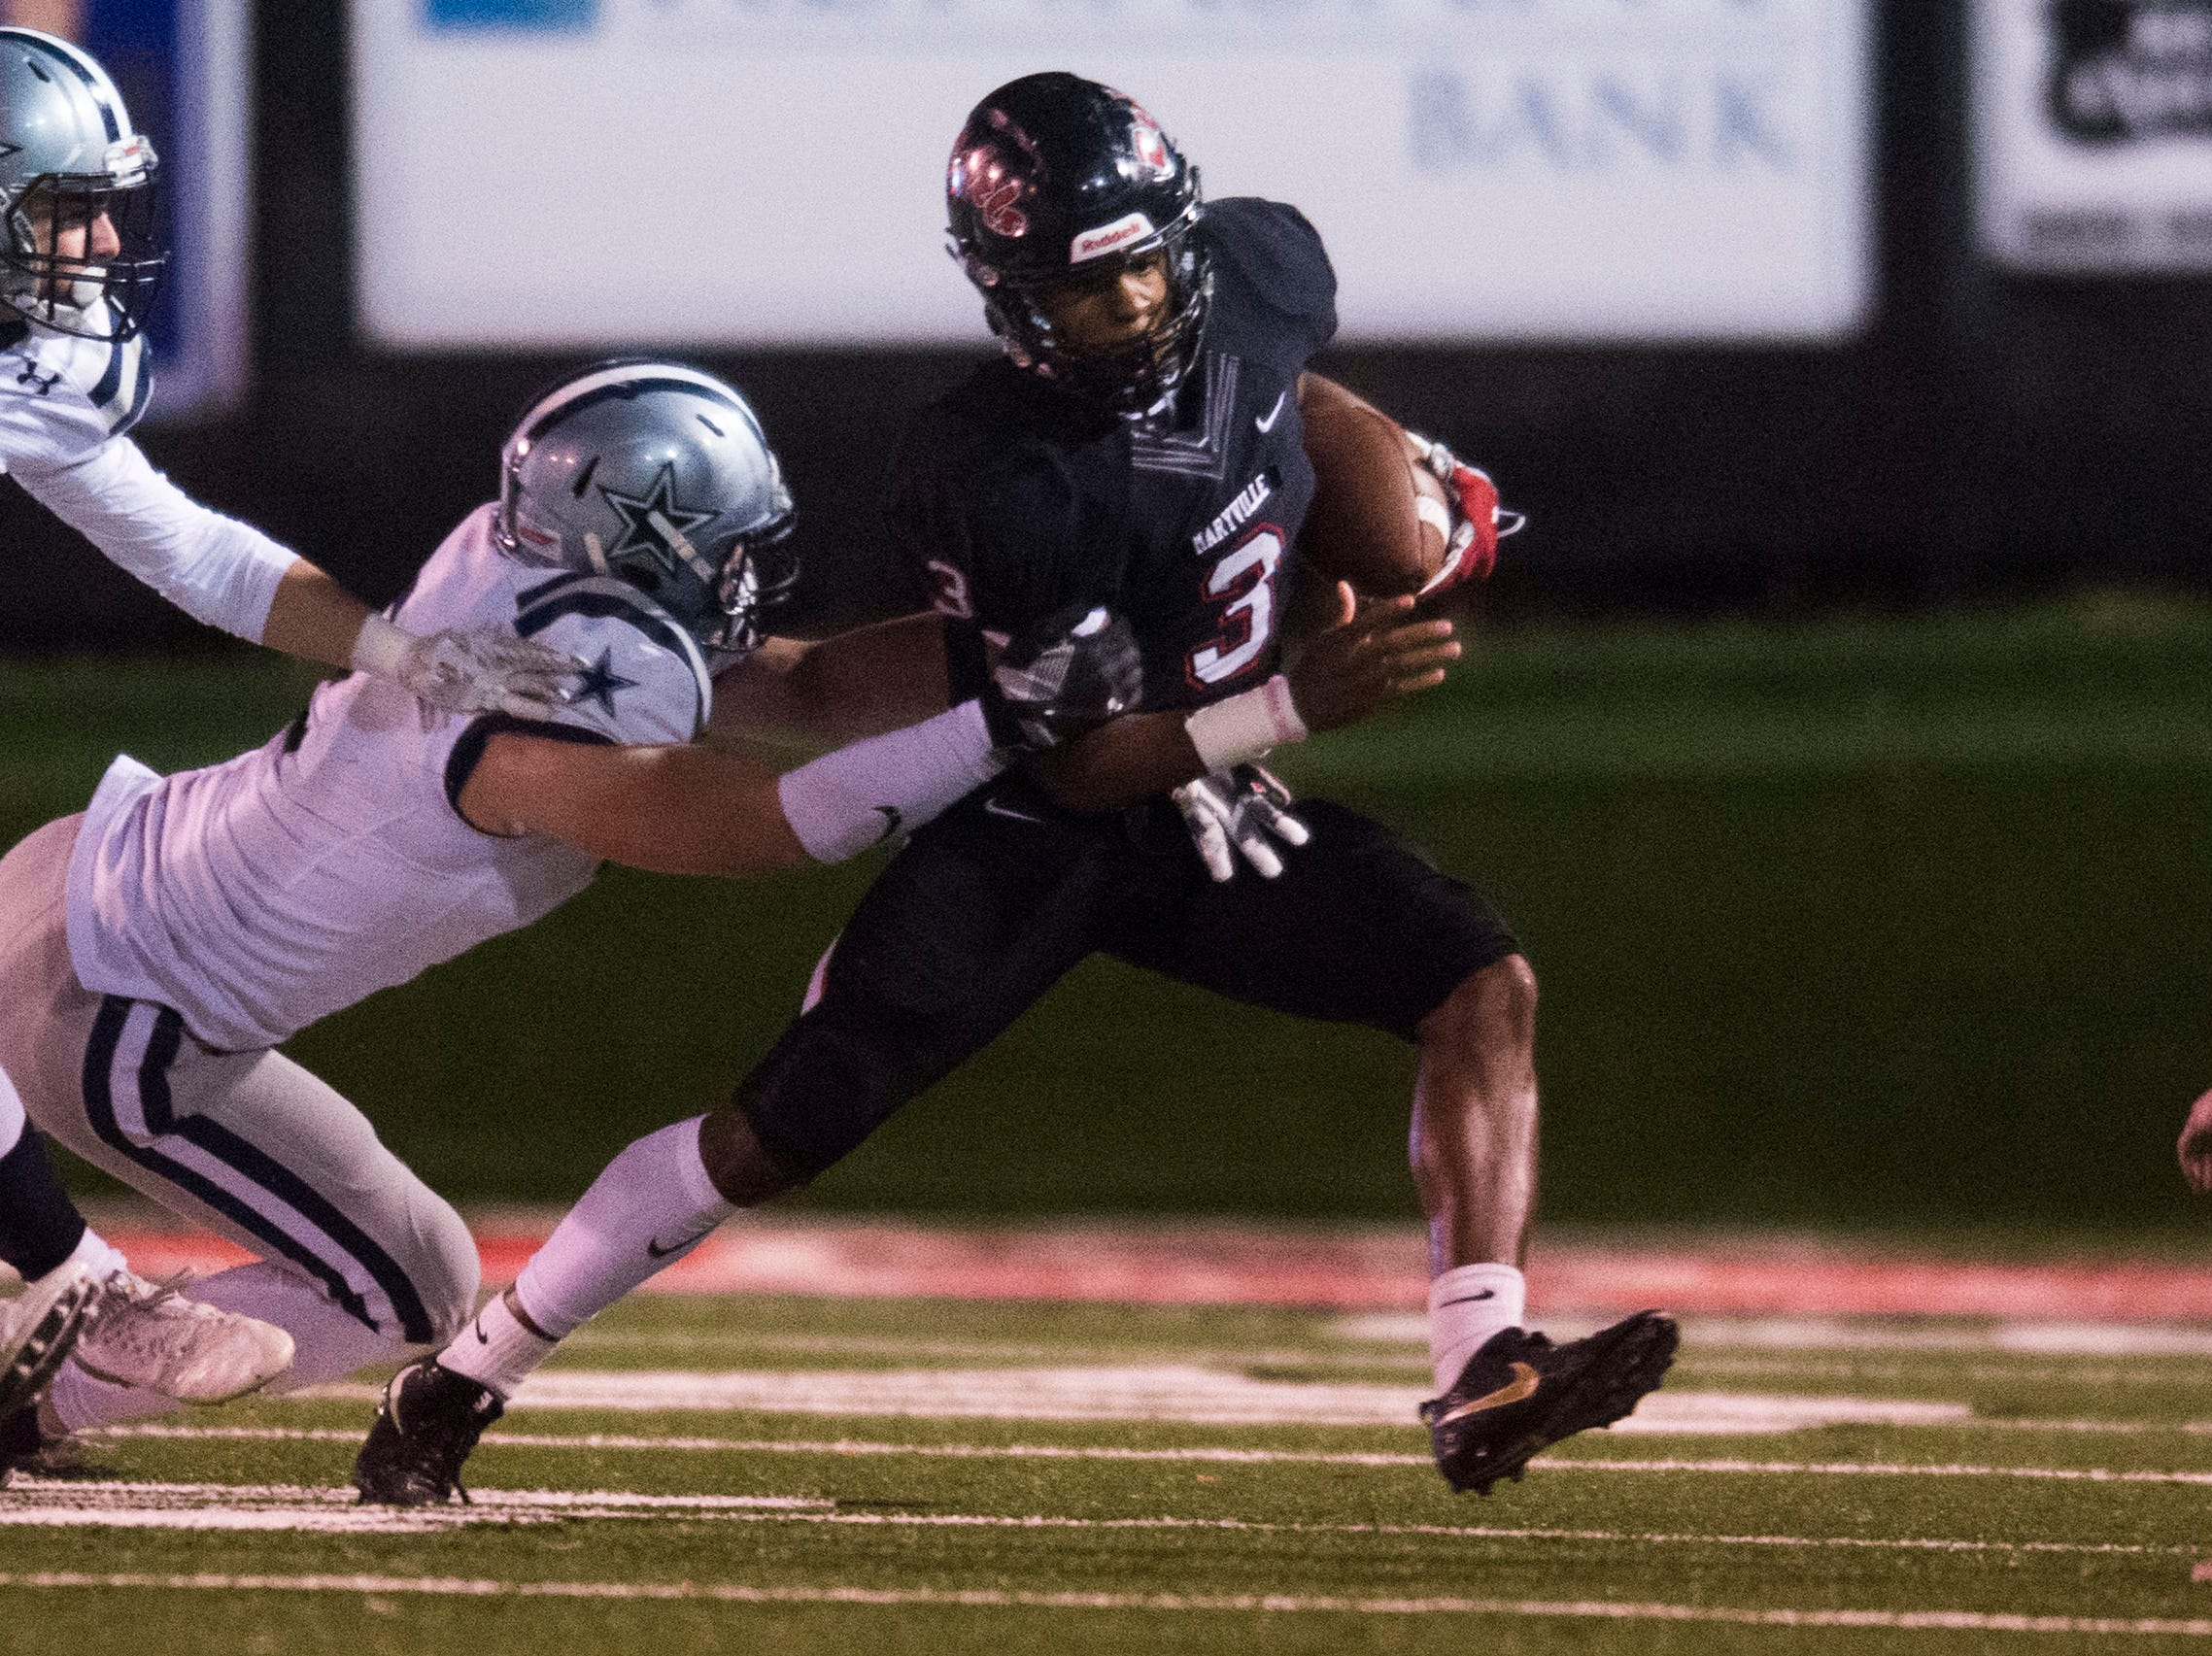 Maryville's A.J. Davis (3) runs with the ballduring a 6A quarterfinal game between Maryville and Farragut at Maryville Friday, Nov. 16, 2018. Maryville defeated Farragut 26-10.